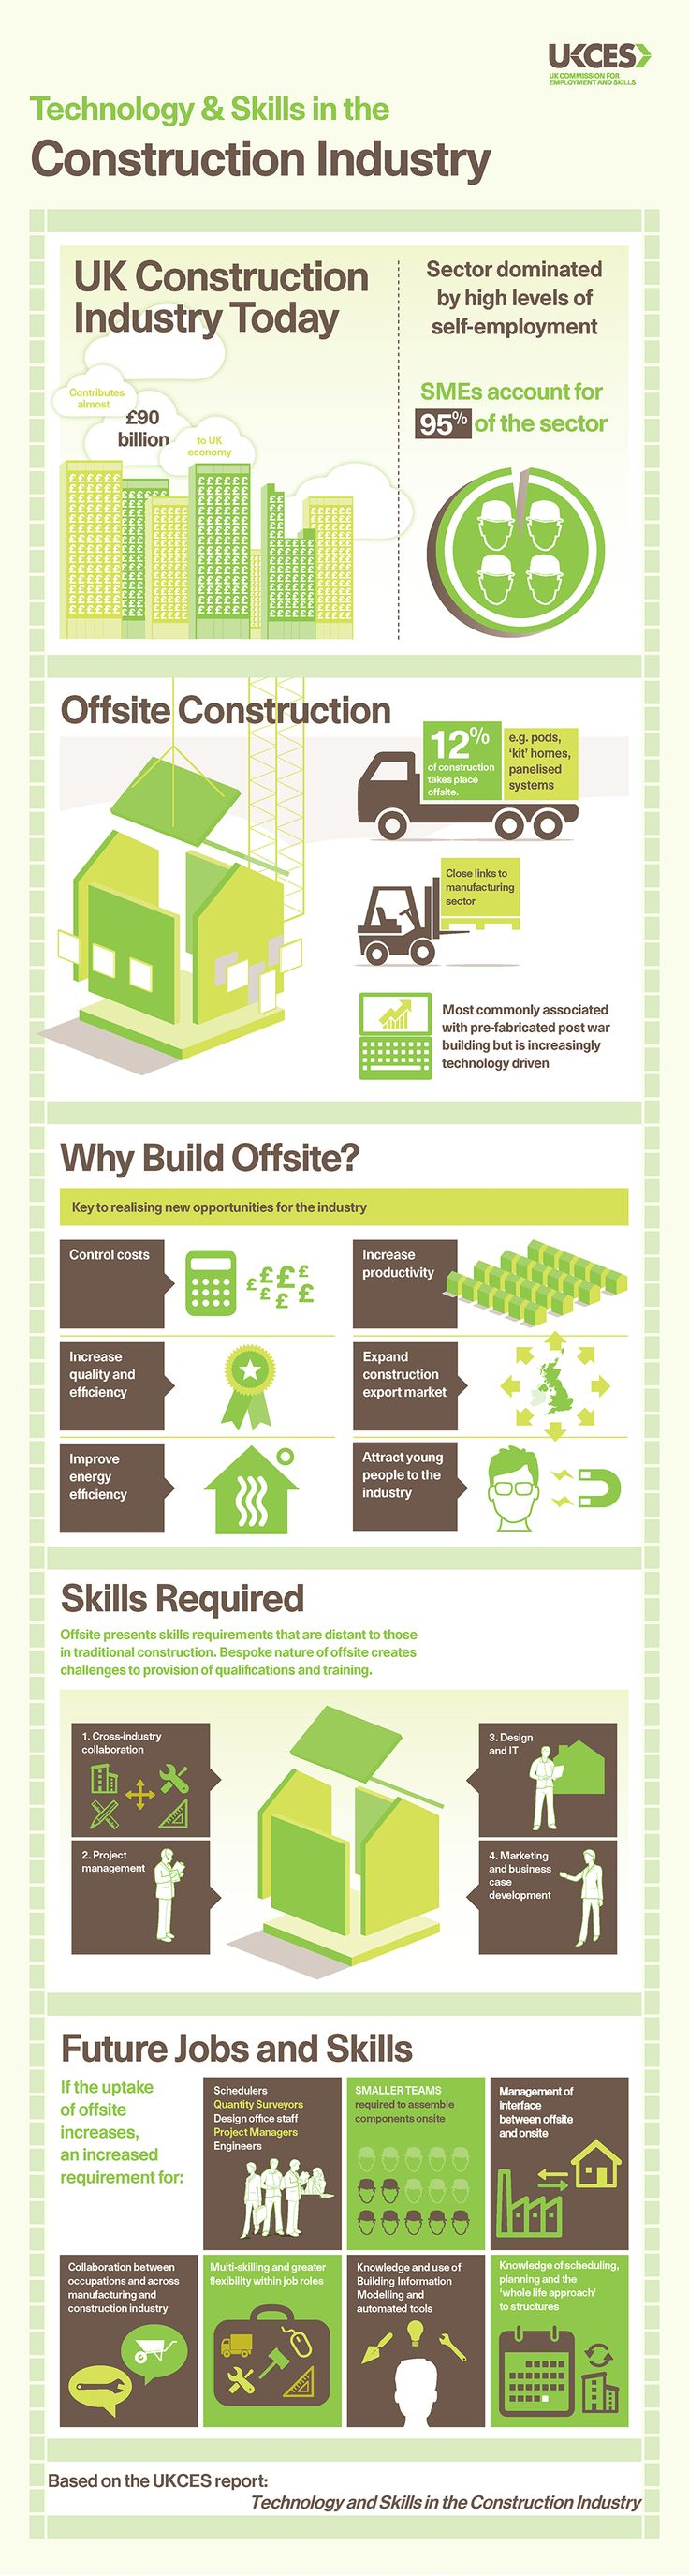 New infographic on Technology and Skills in the Construction industry > http://ow.ly/oLuTG